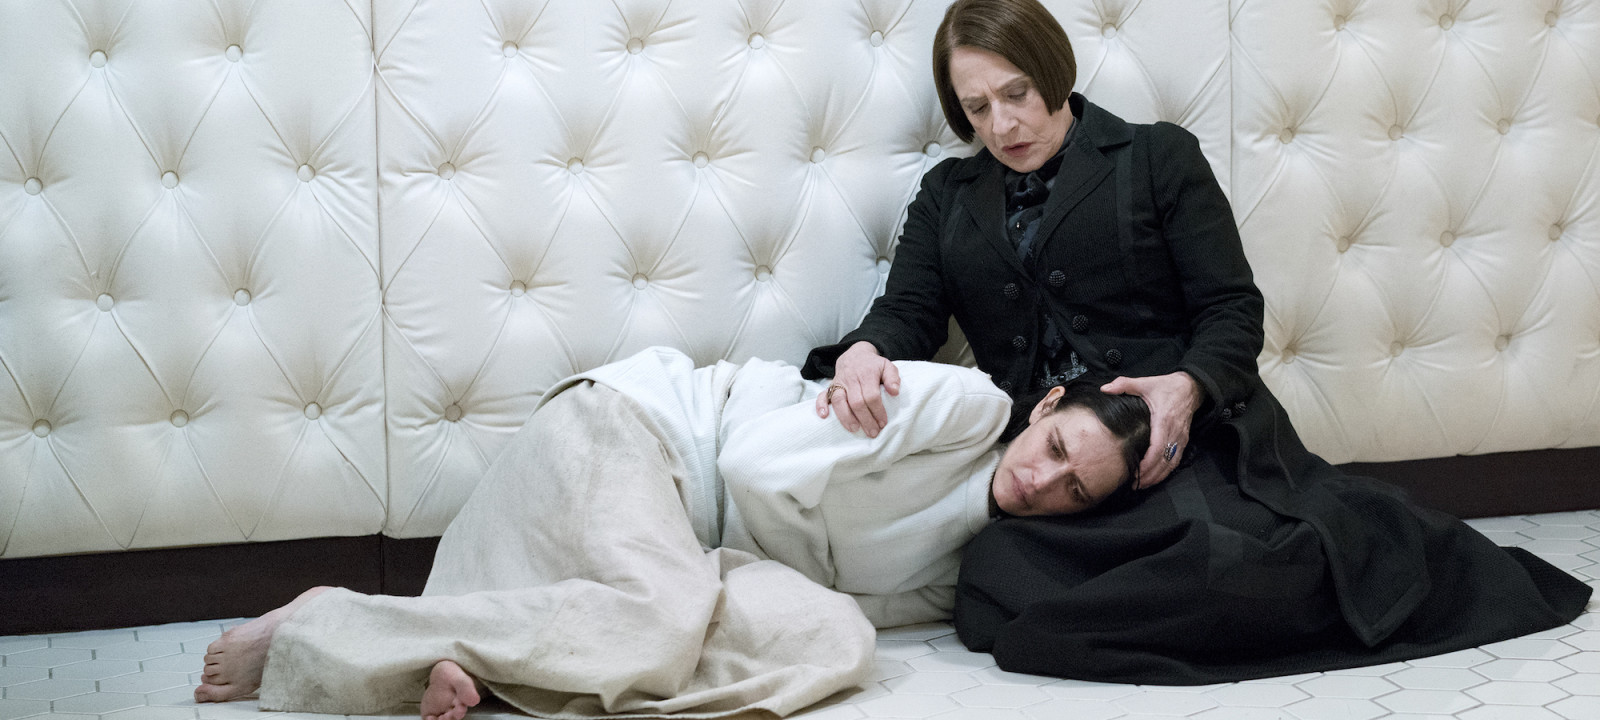 Eva Green and Patti LuPone star in Penny Dreadful Season Three.